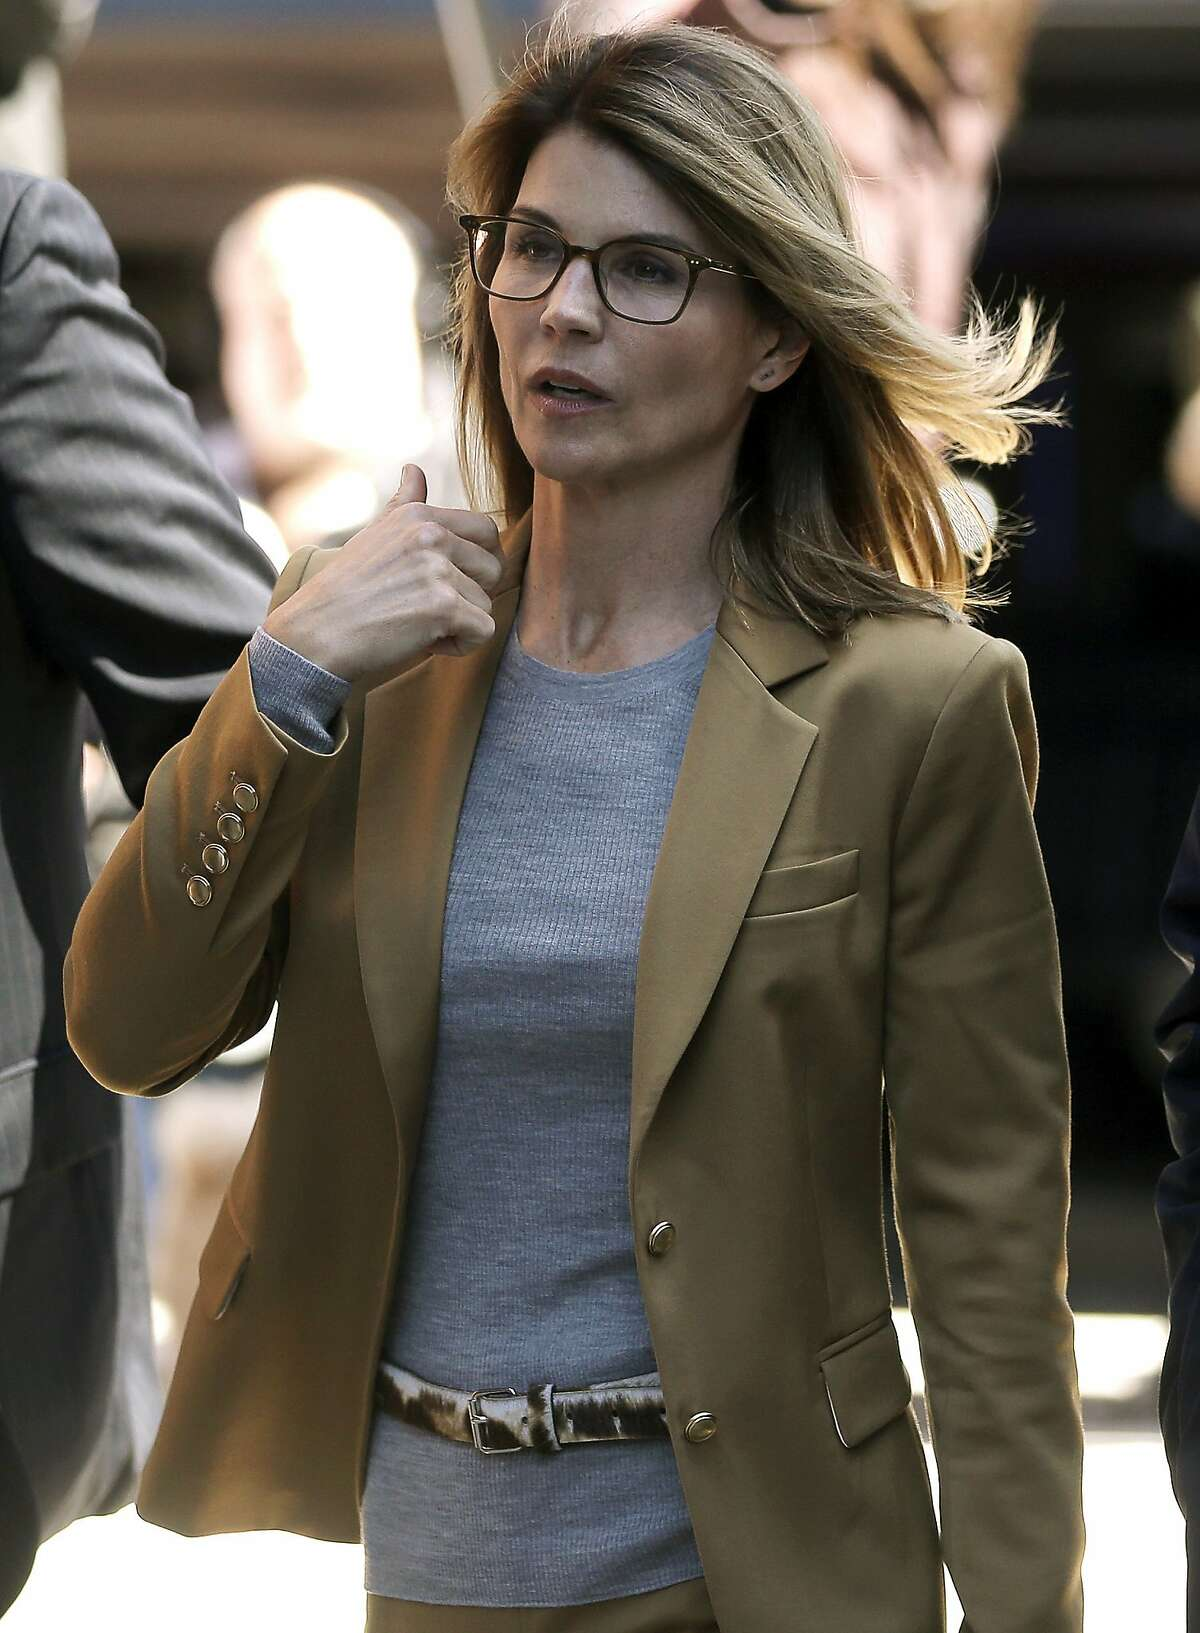 FILE -- Actress Lori Loughlin arrives at federal court in Boston on Wednesday, April 3, 2019, to face charges in a nationwide college admissions bribery scandal.